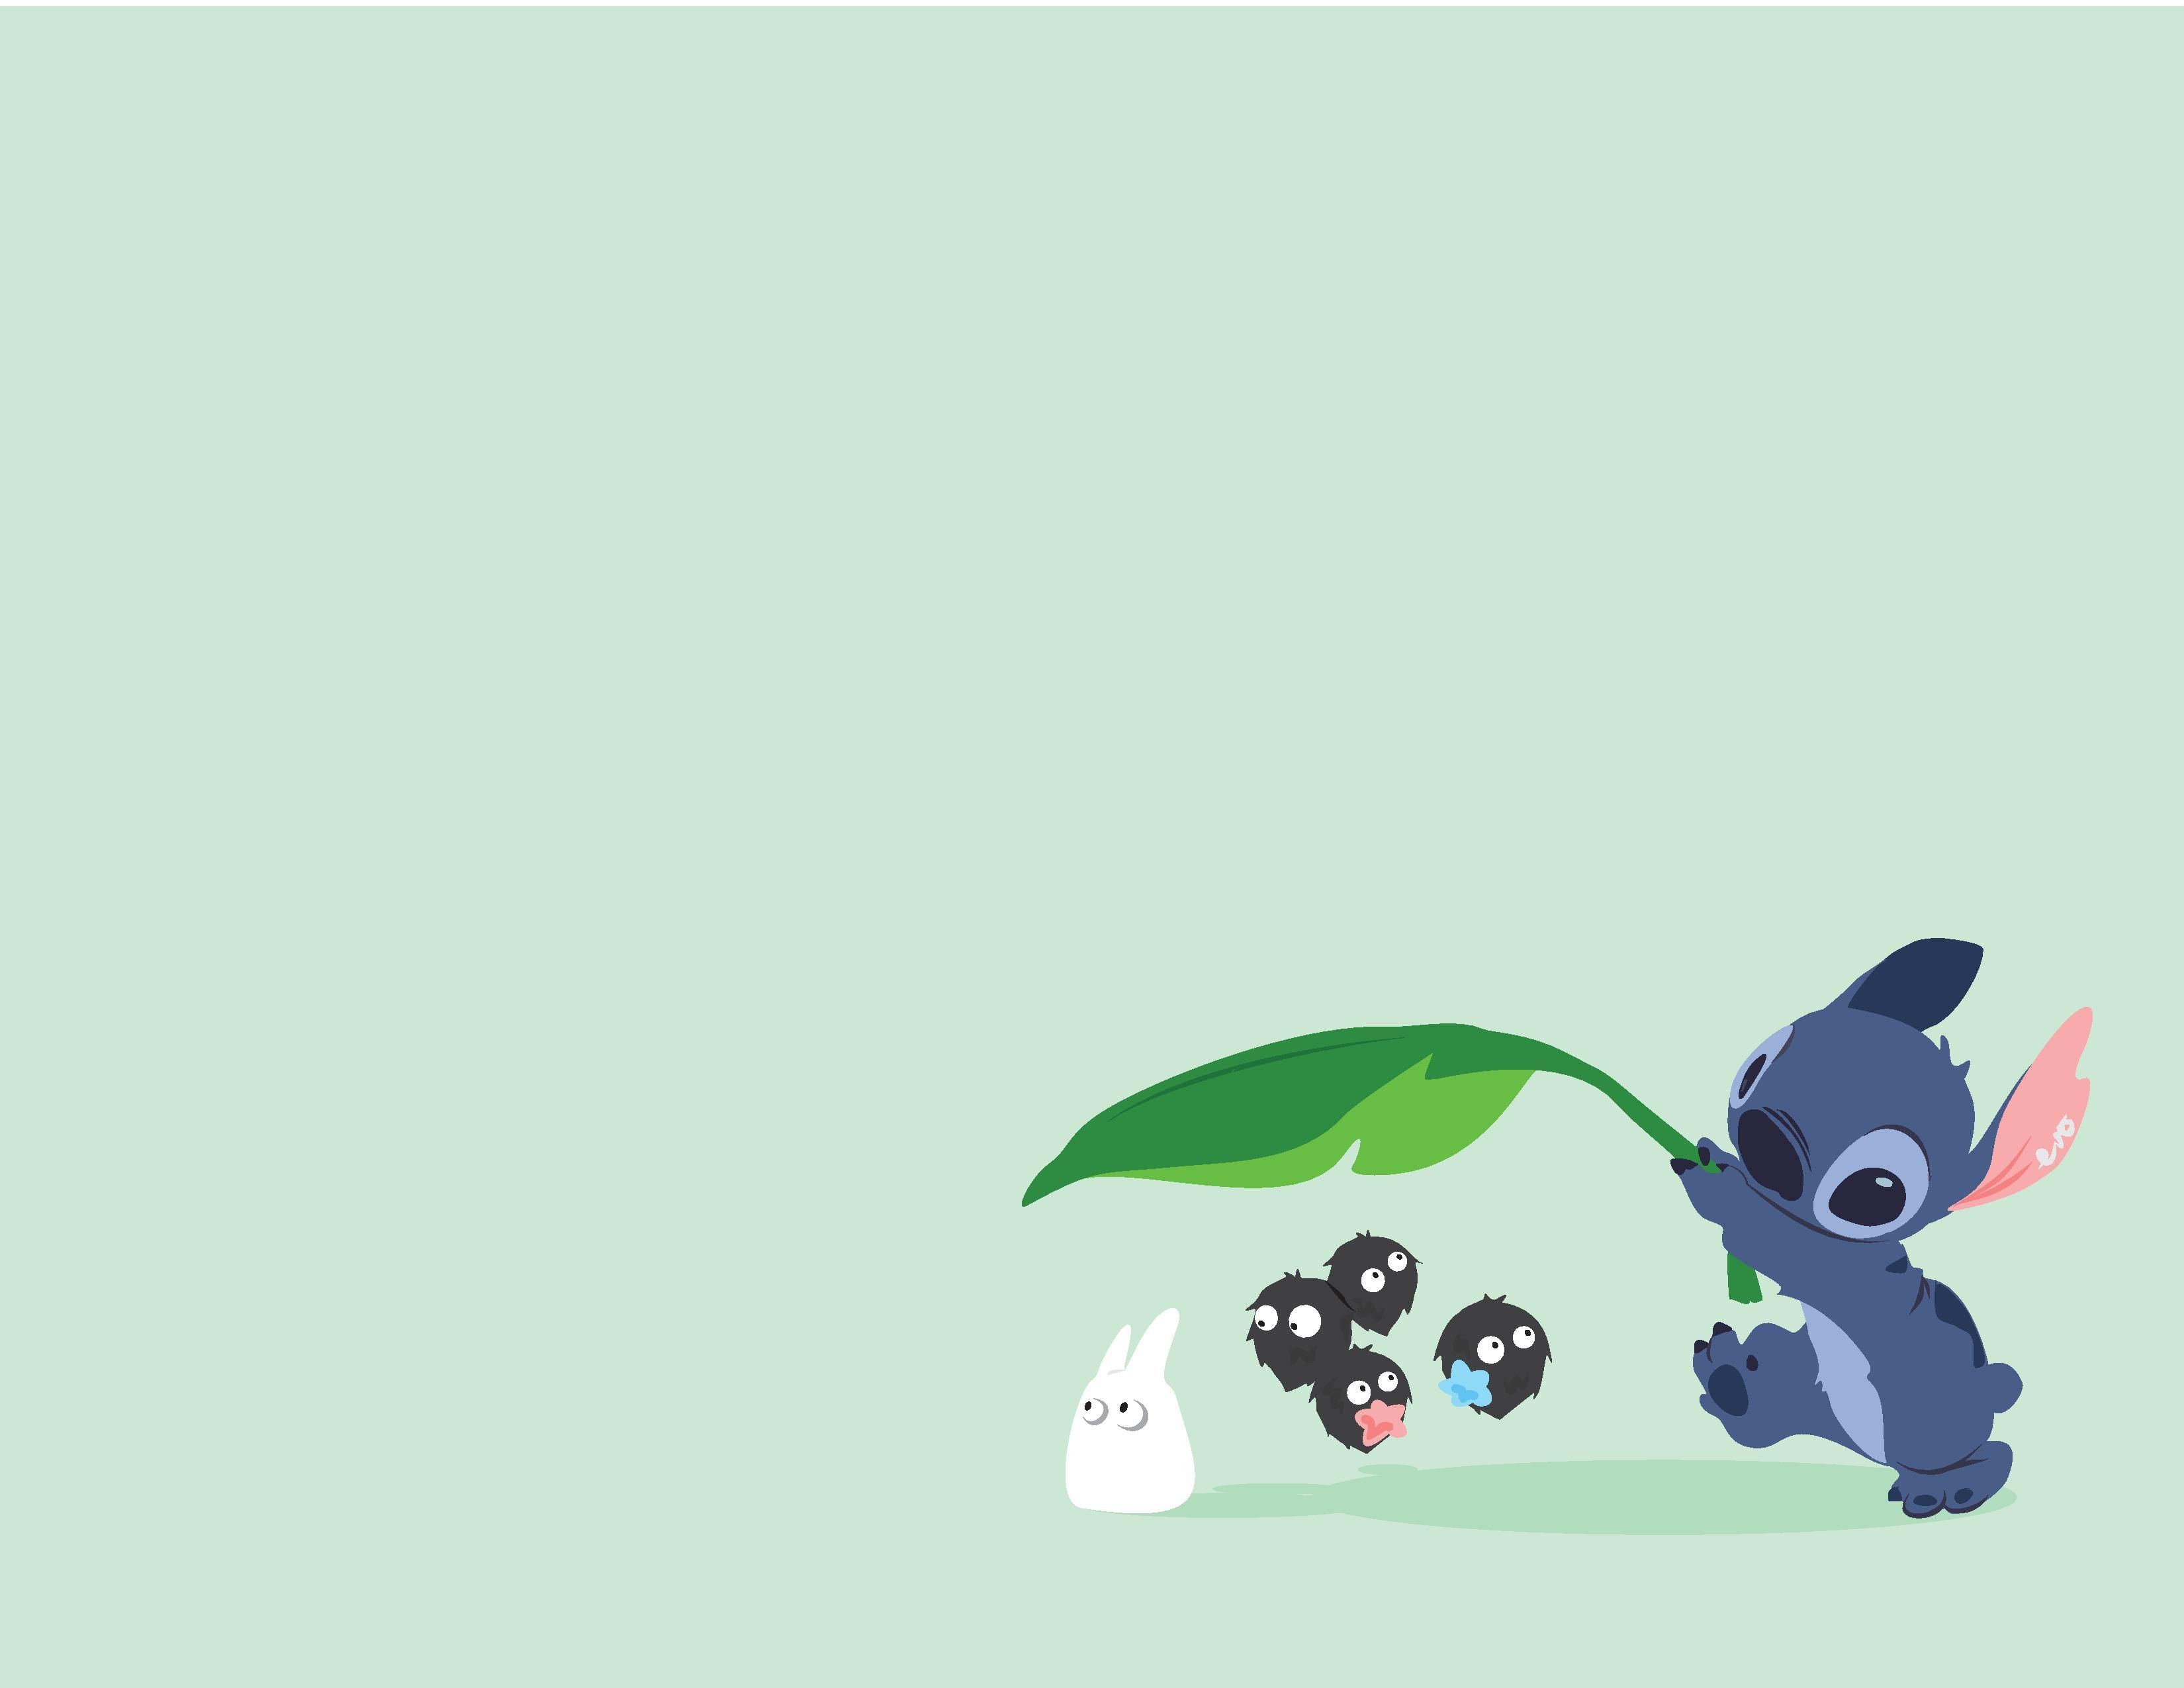 Lilo And Stitch Desktop Background Posted By Samantha Thompson